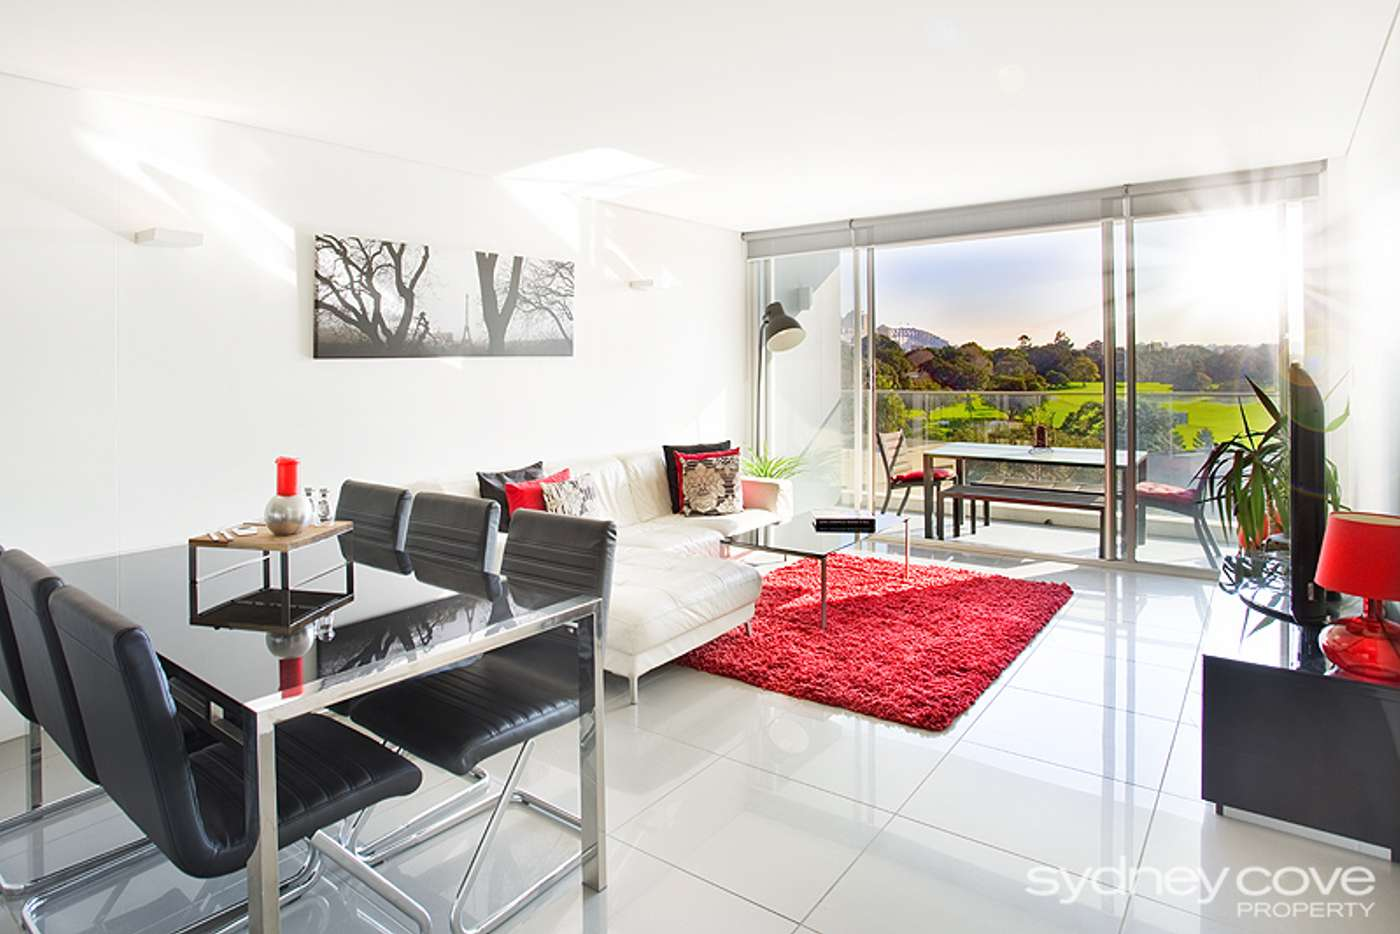 Main view of Homely apartment listing, 60 William St, Sydney NSW 2000